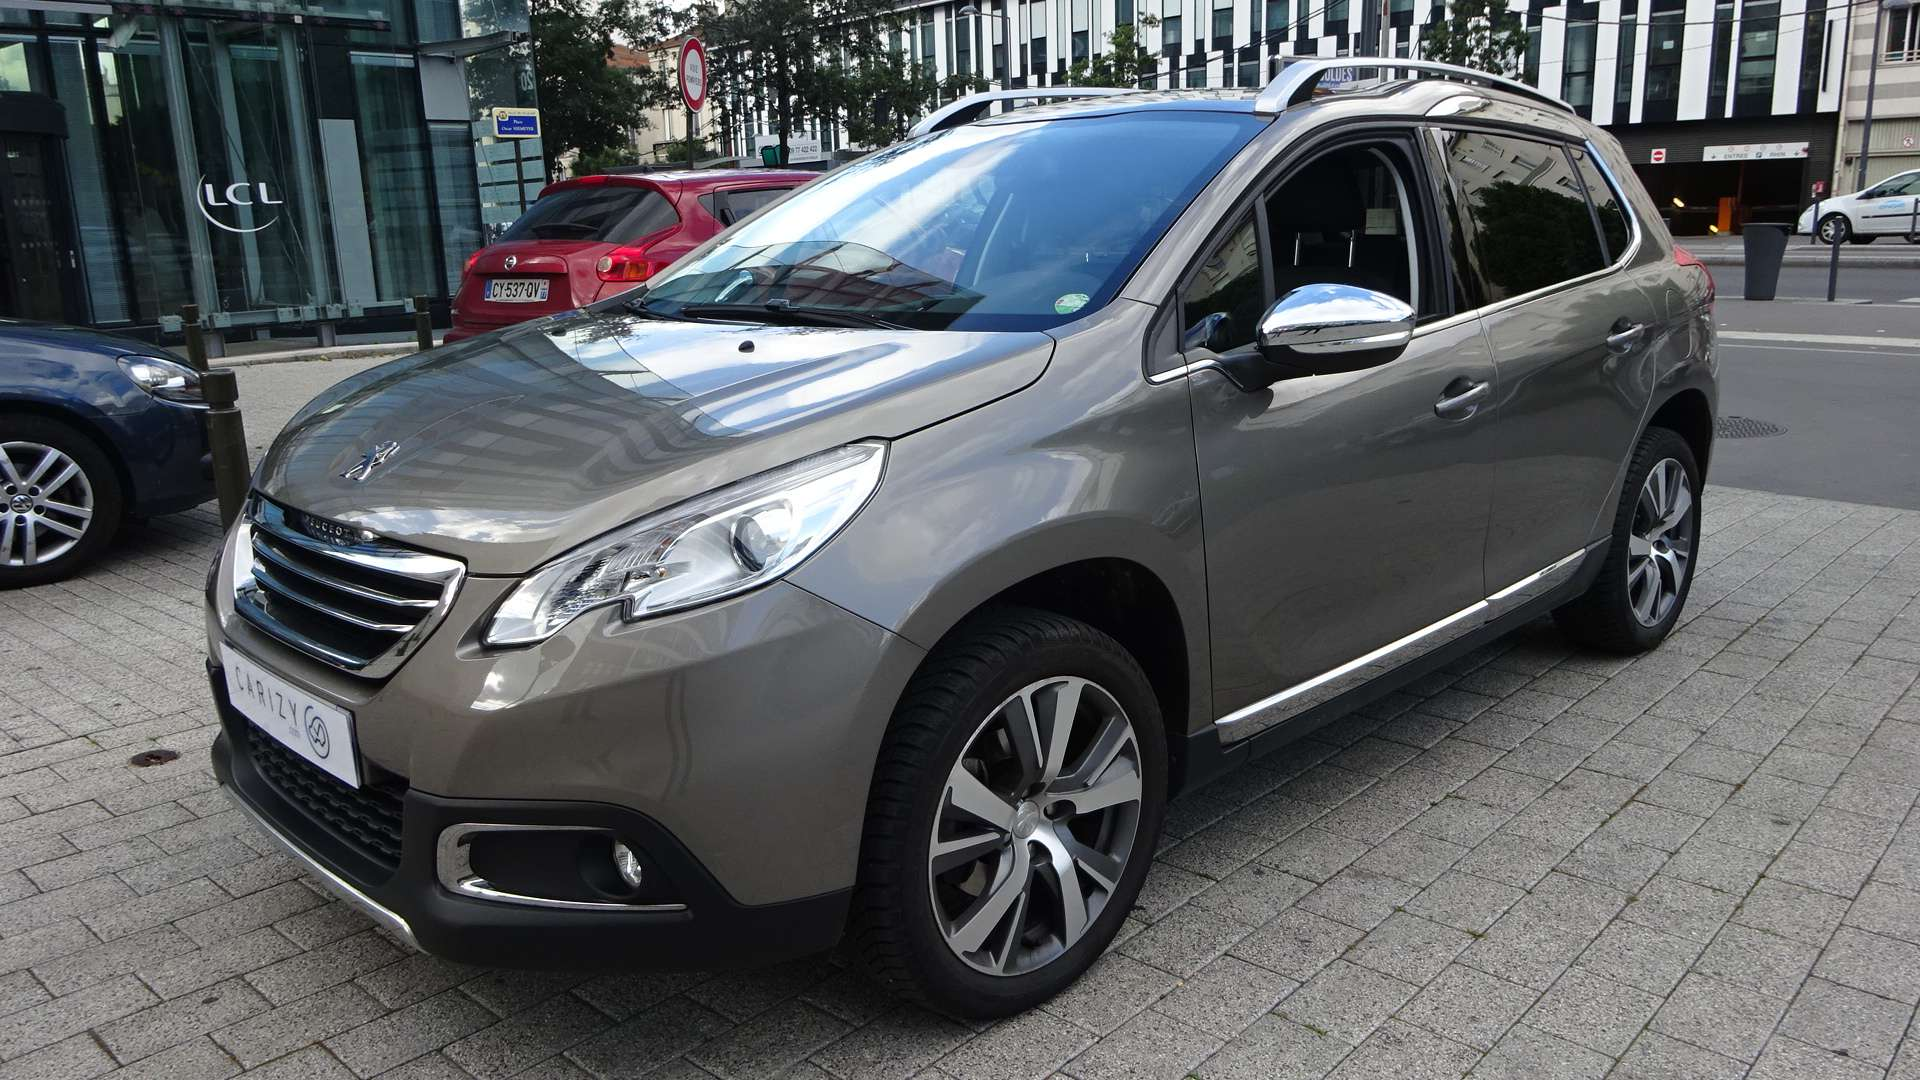 voiture peugeot 2008 occasion essence 2013 25100 km